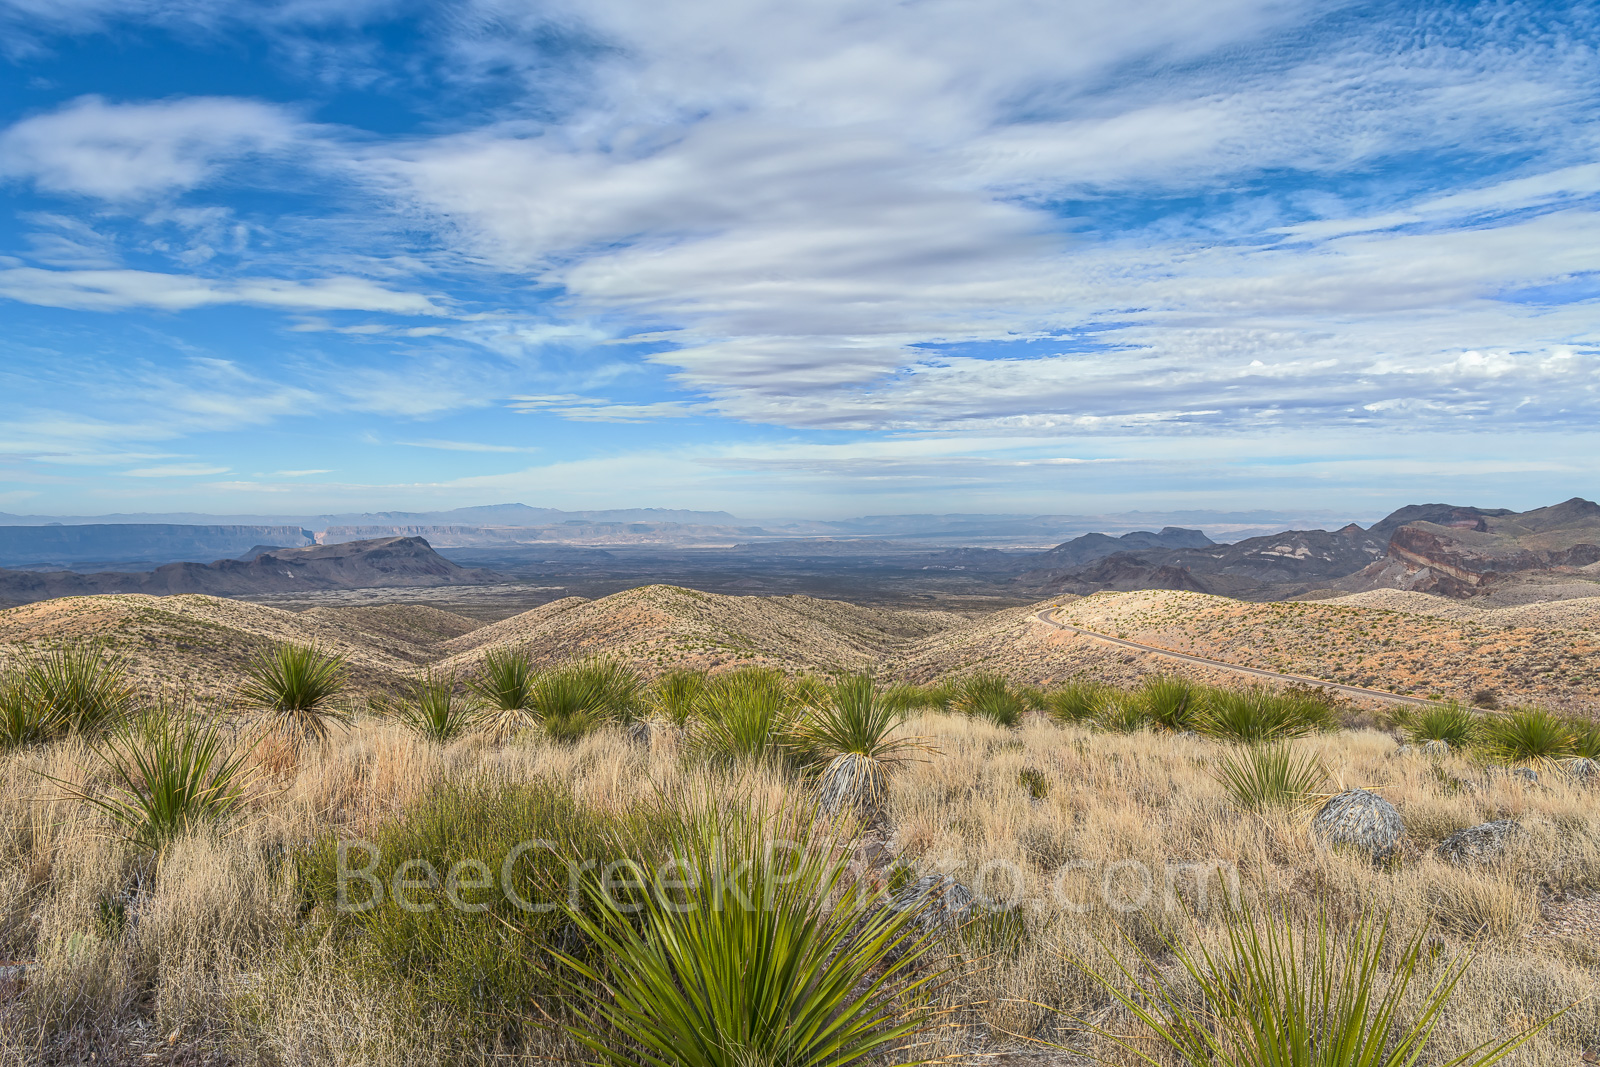 Big Bend National Park, Sotal Vista Overlook, mountains, ross maxwell Scenic Drive, distant, views, desert, Santa Elena Canyon, , photo